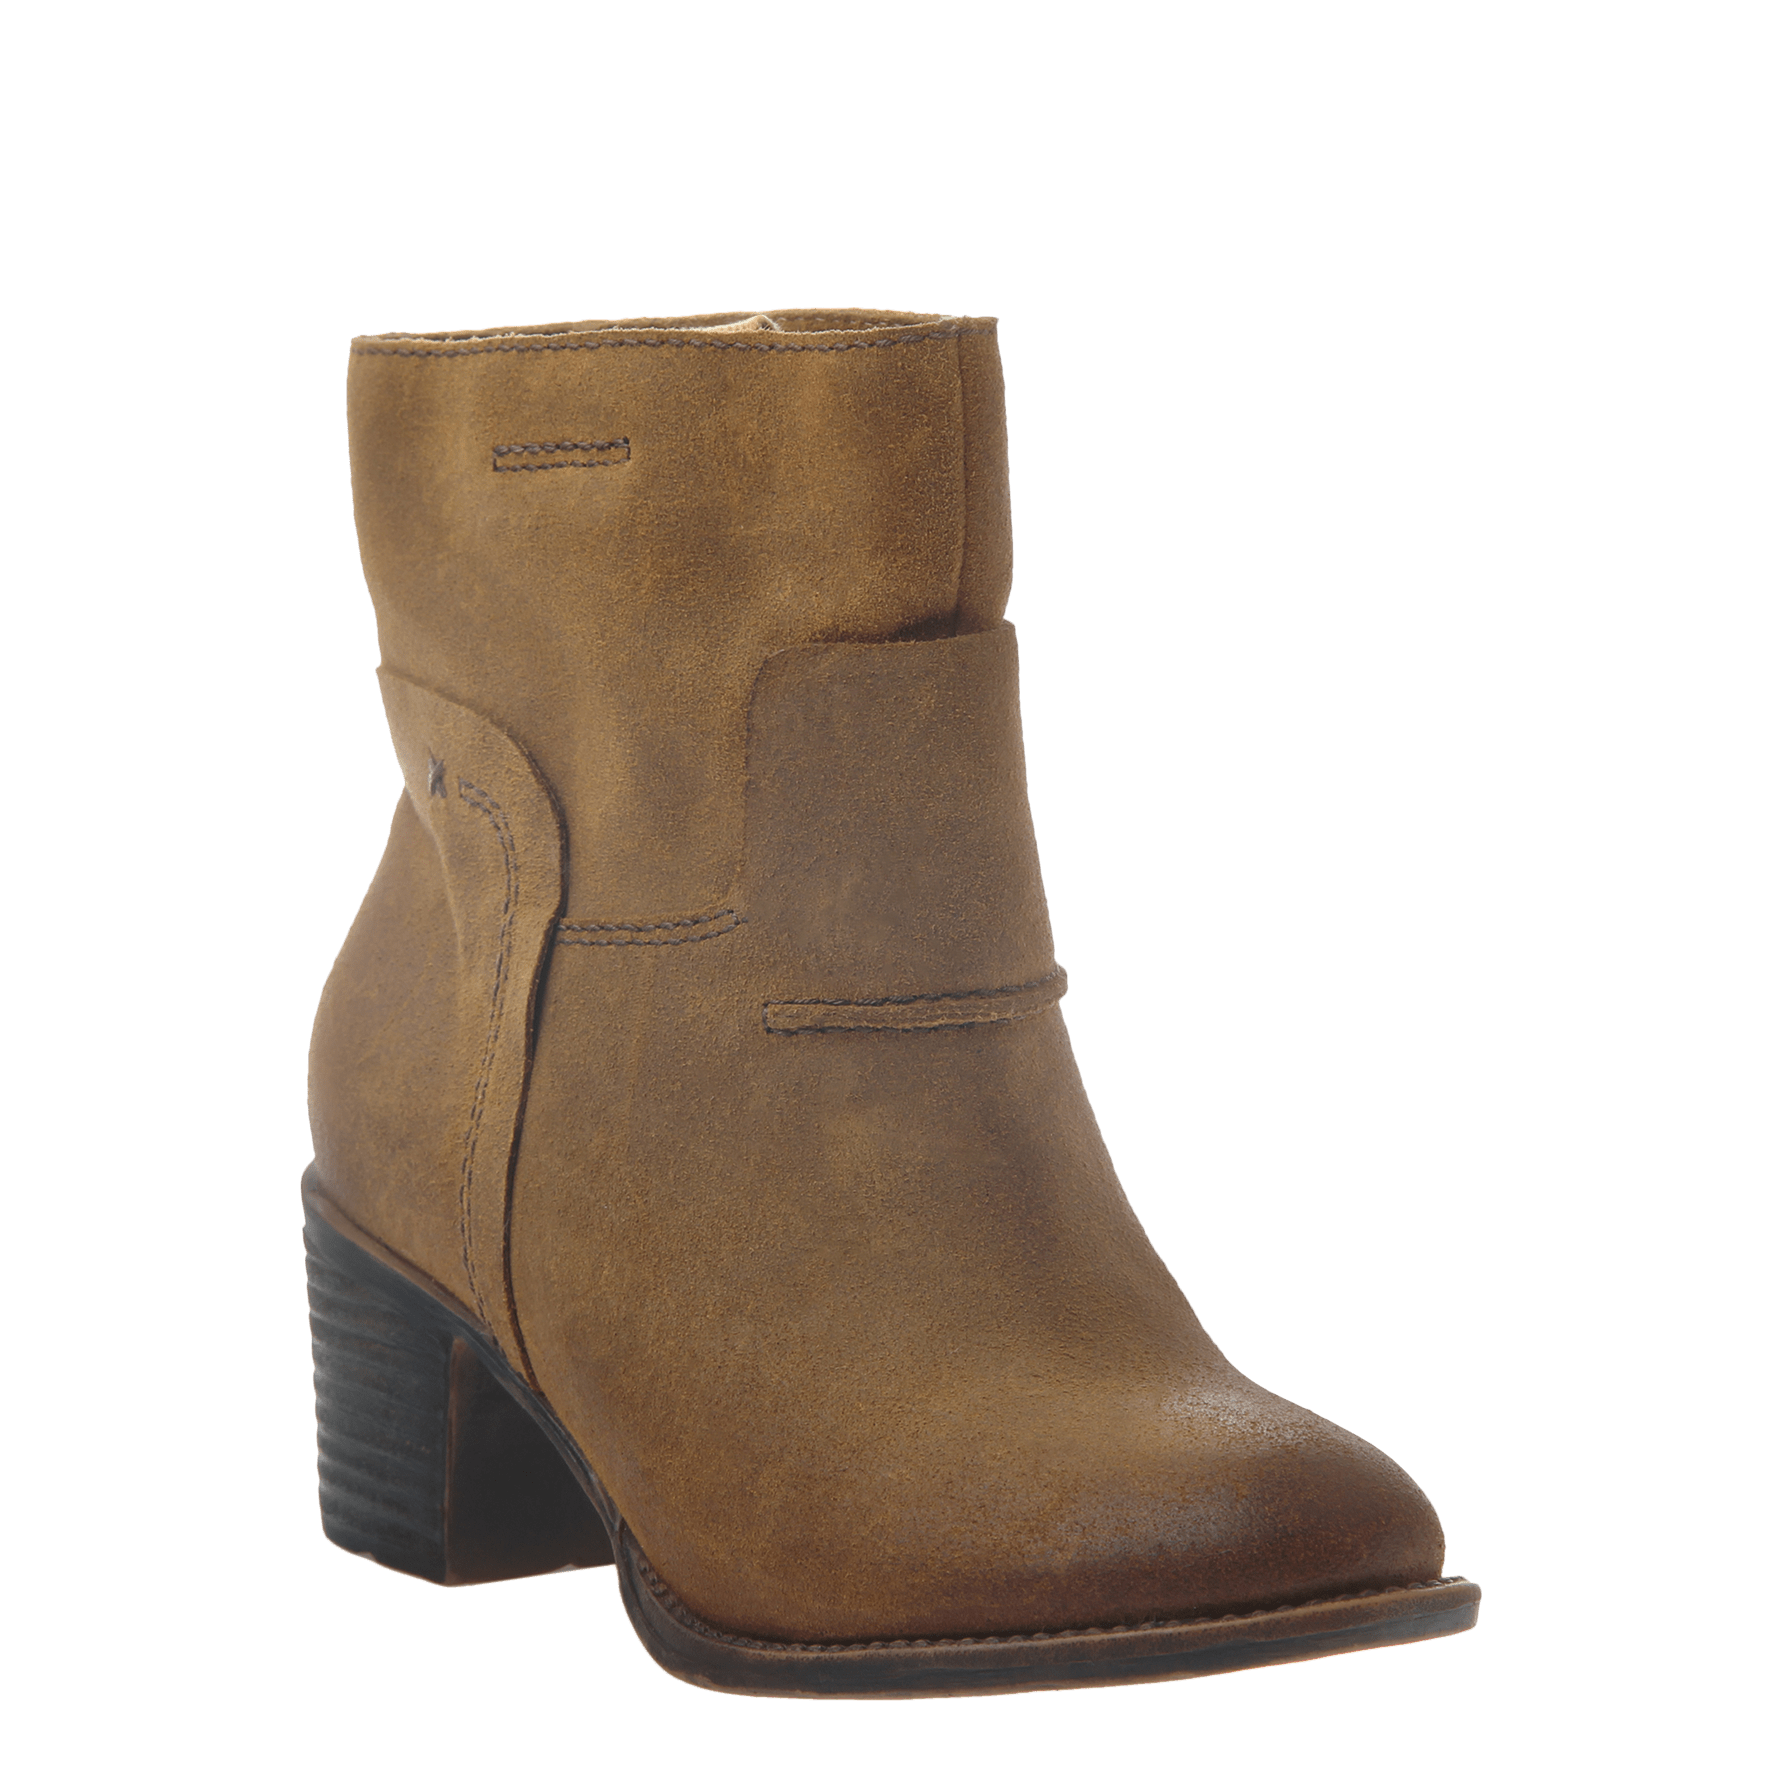 Urban women's ankle boot in New Taupe